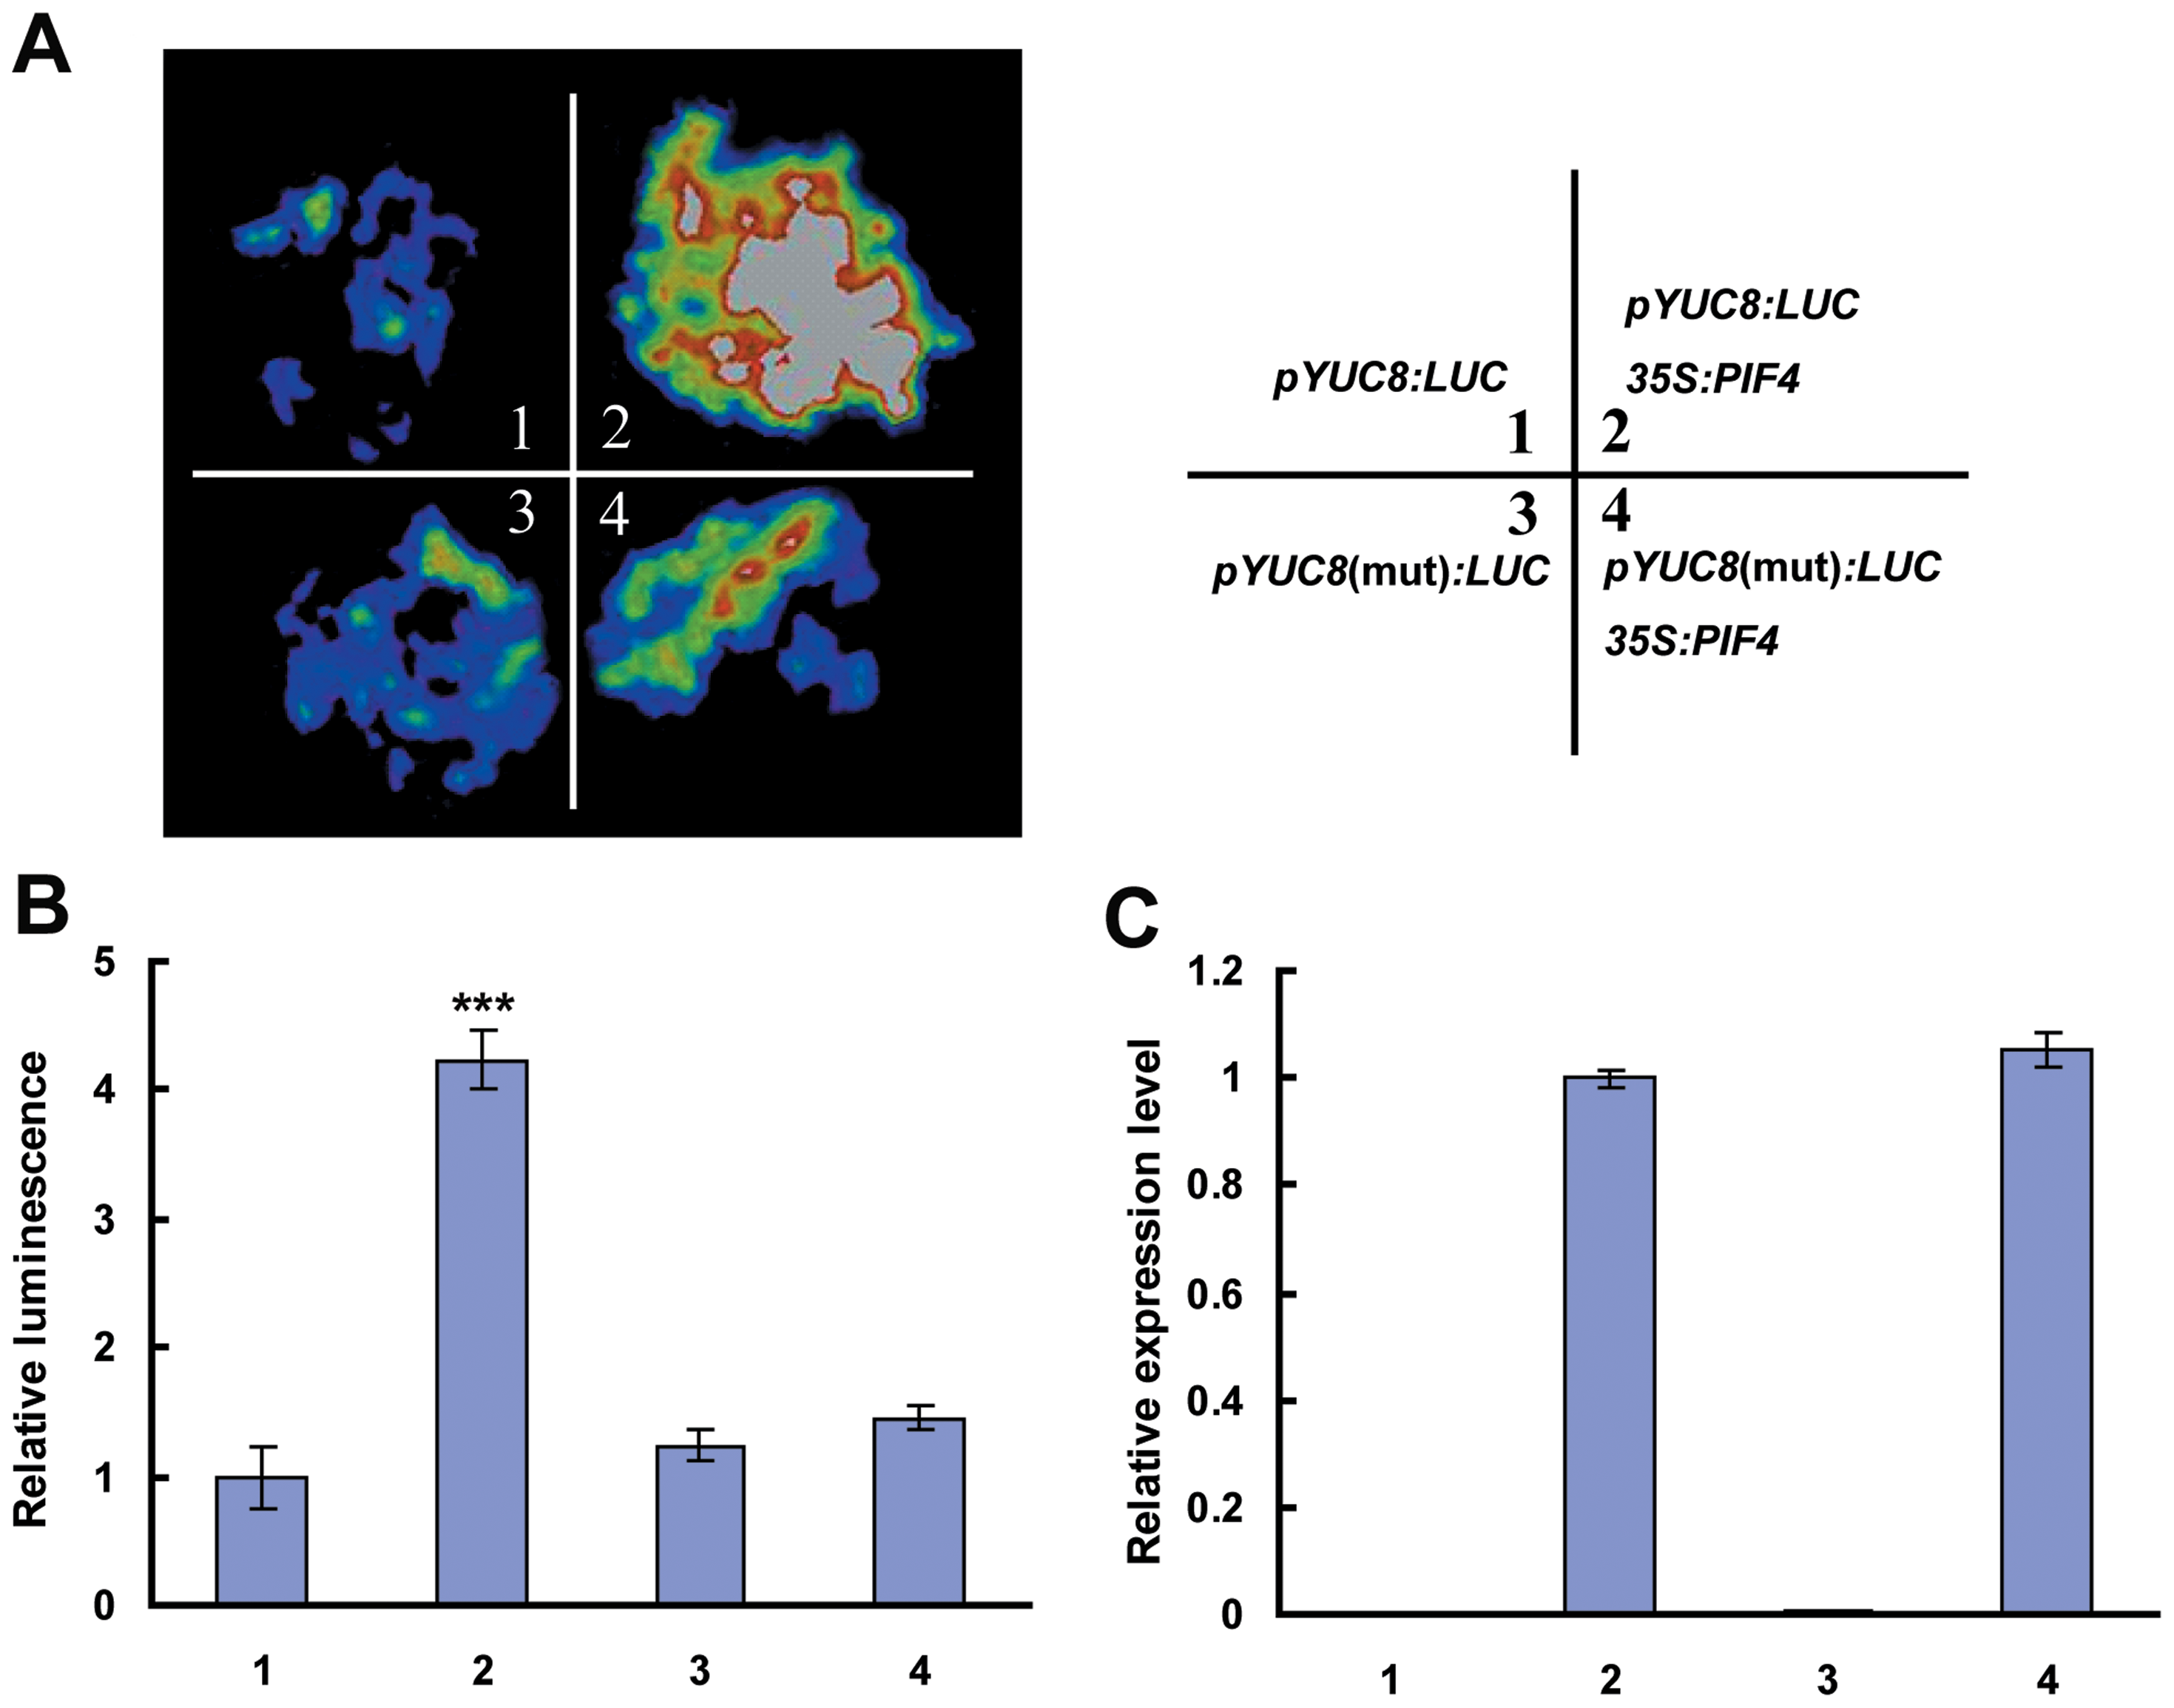 PIF4 Activates <i>YUC8</i> Expression, as Revealed by Transient Assays of <i>N. benthamiana</i> Leaves.